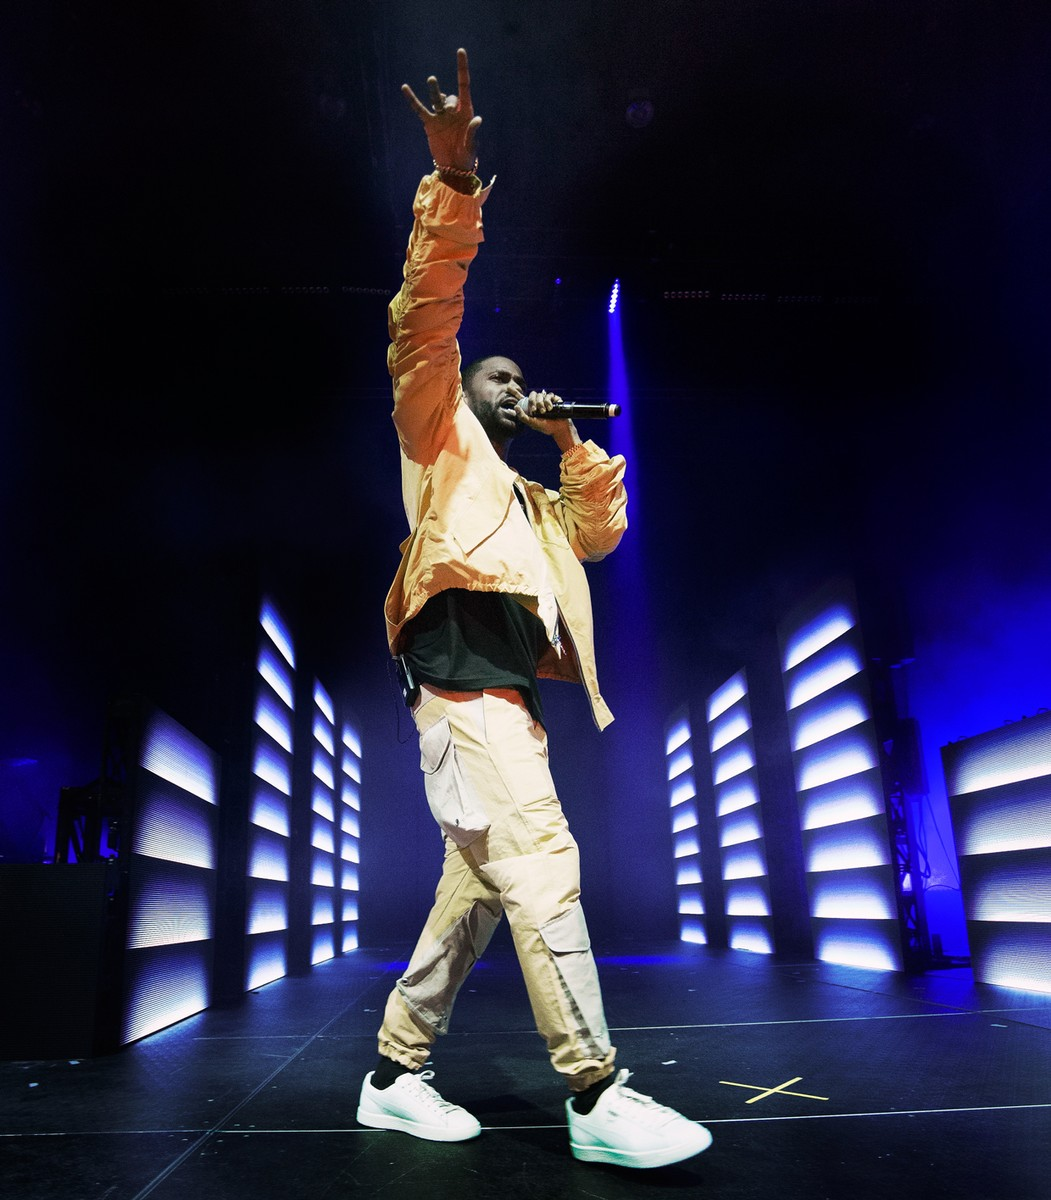 Big Sean performs at Revention Music Center on March 17, 2017 in Houston, Texas.